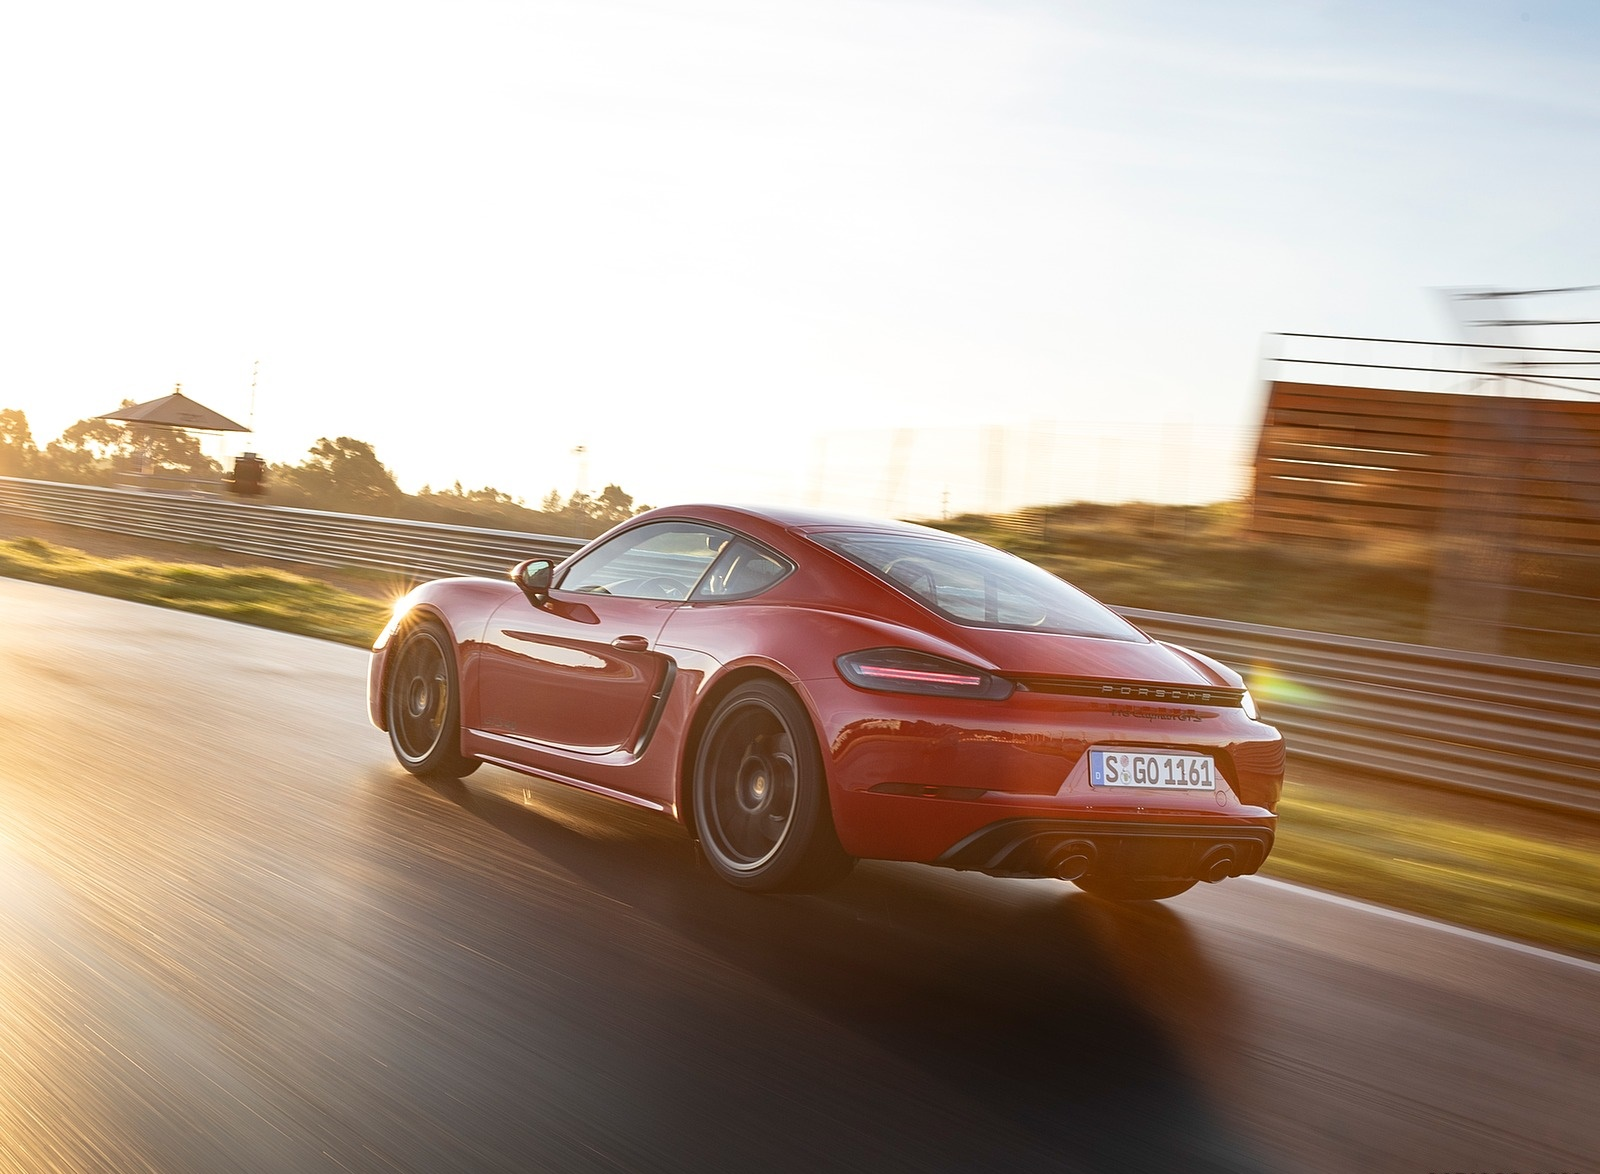 2020 Porsche 718 Cayman GTS 4.0 (Color: Carmine Red) Rear Three-Quarter Wallpapers (6)